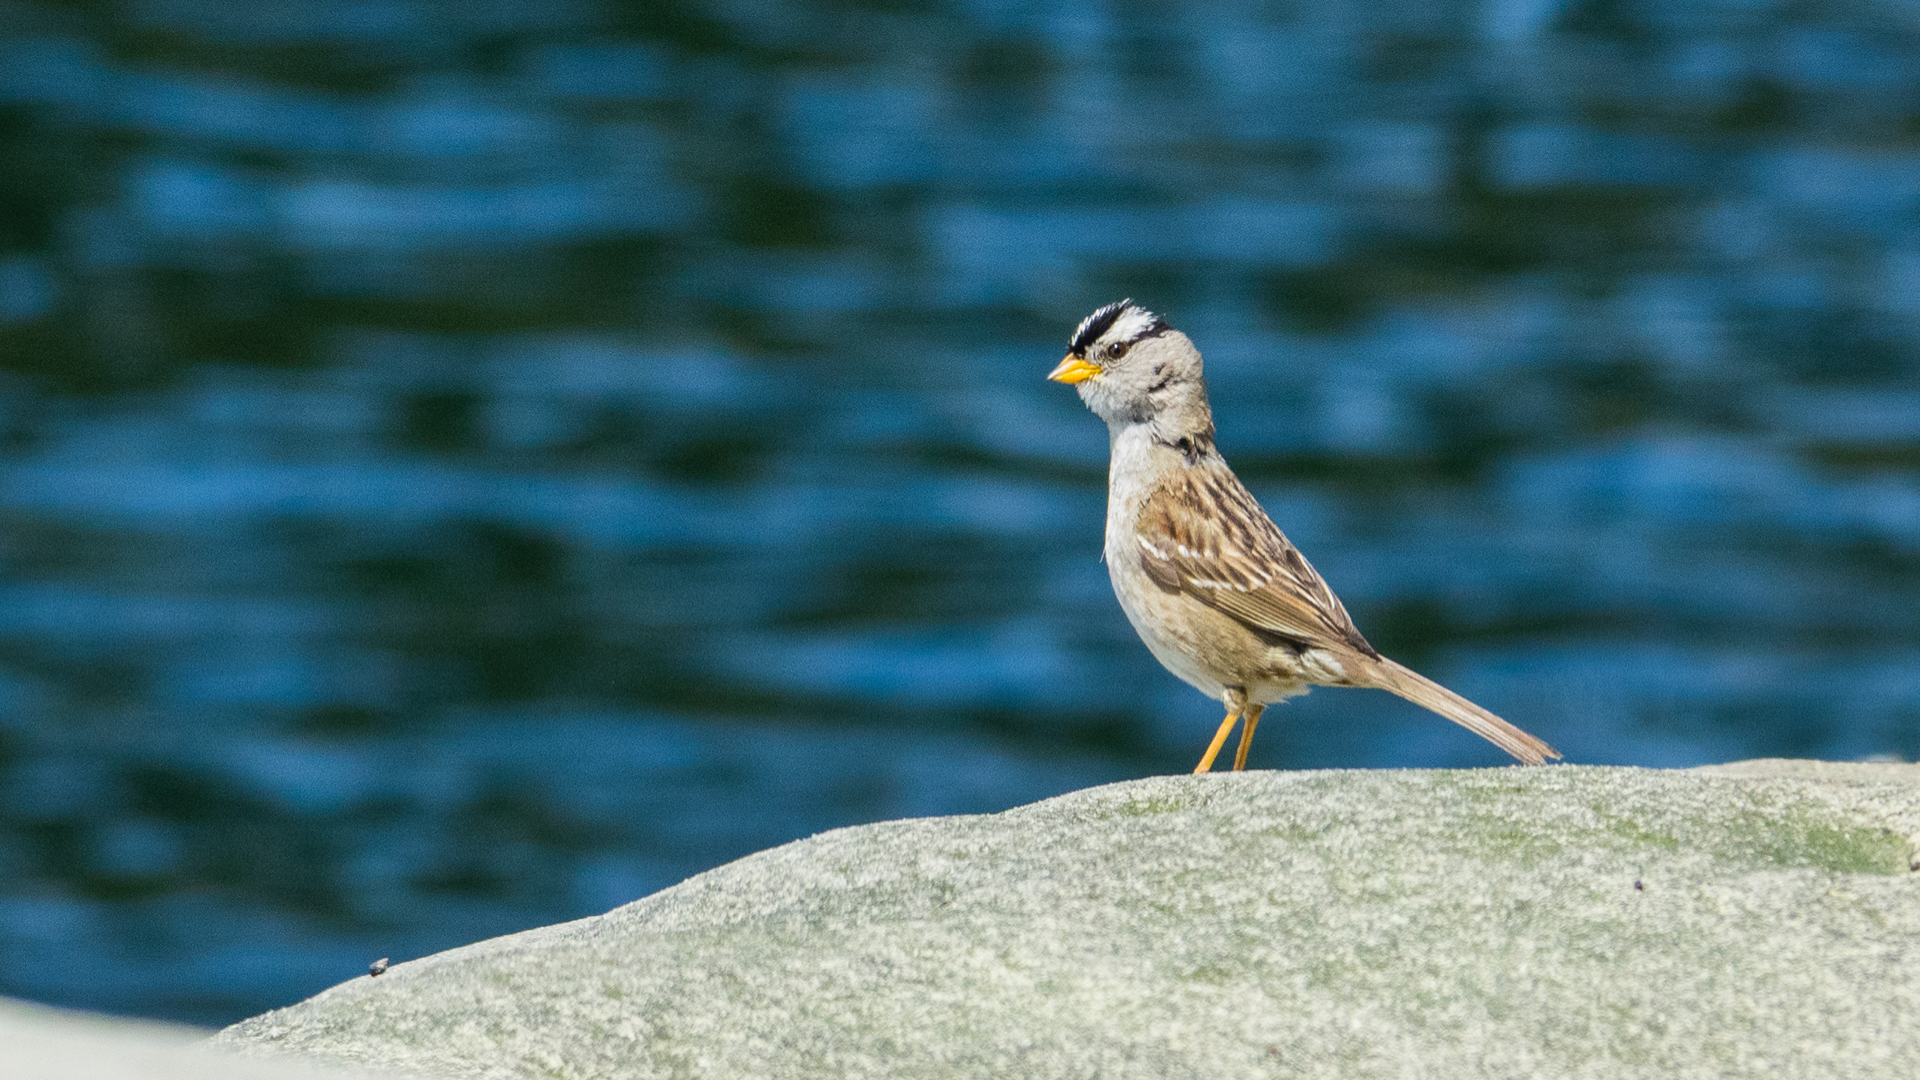 We had a little white-crowned sparrow come check out what was going on.